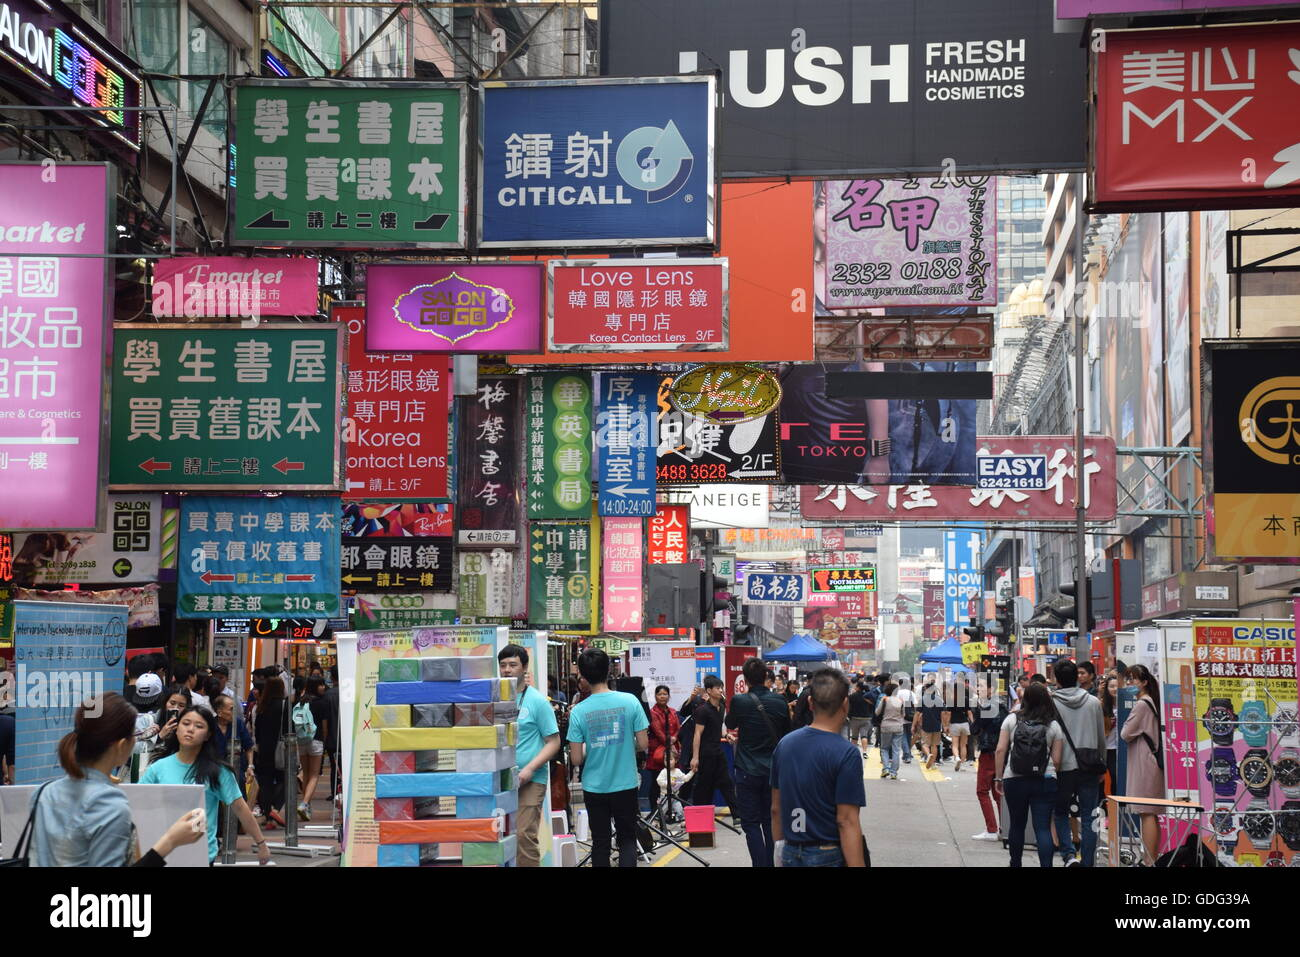 Signboards in Kowloon streets, Hong Kong - Stock Image